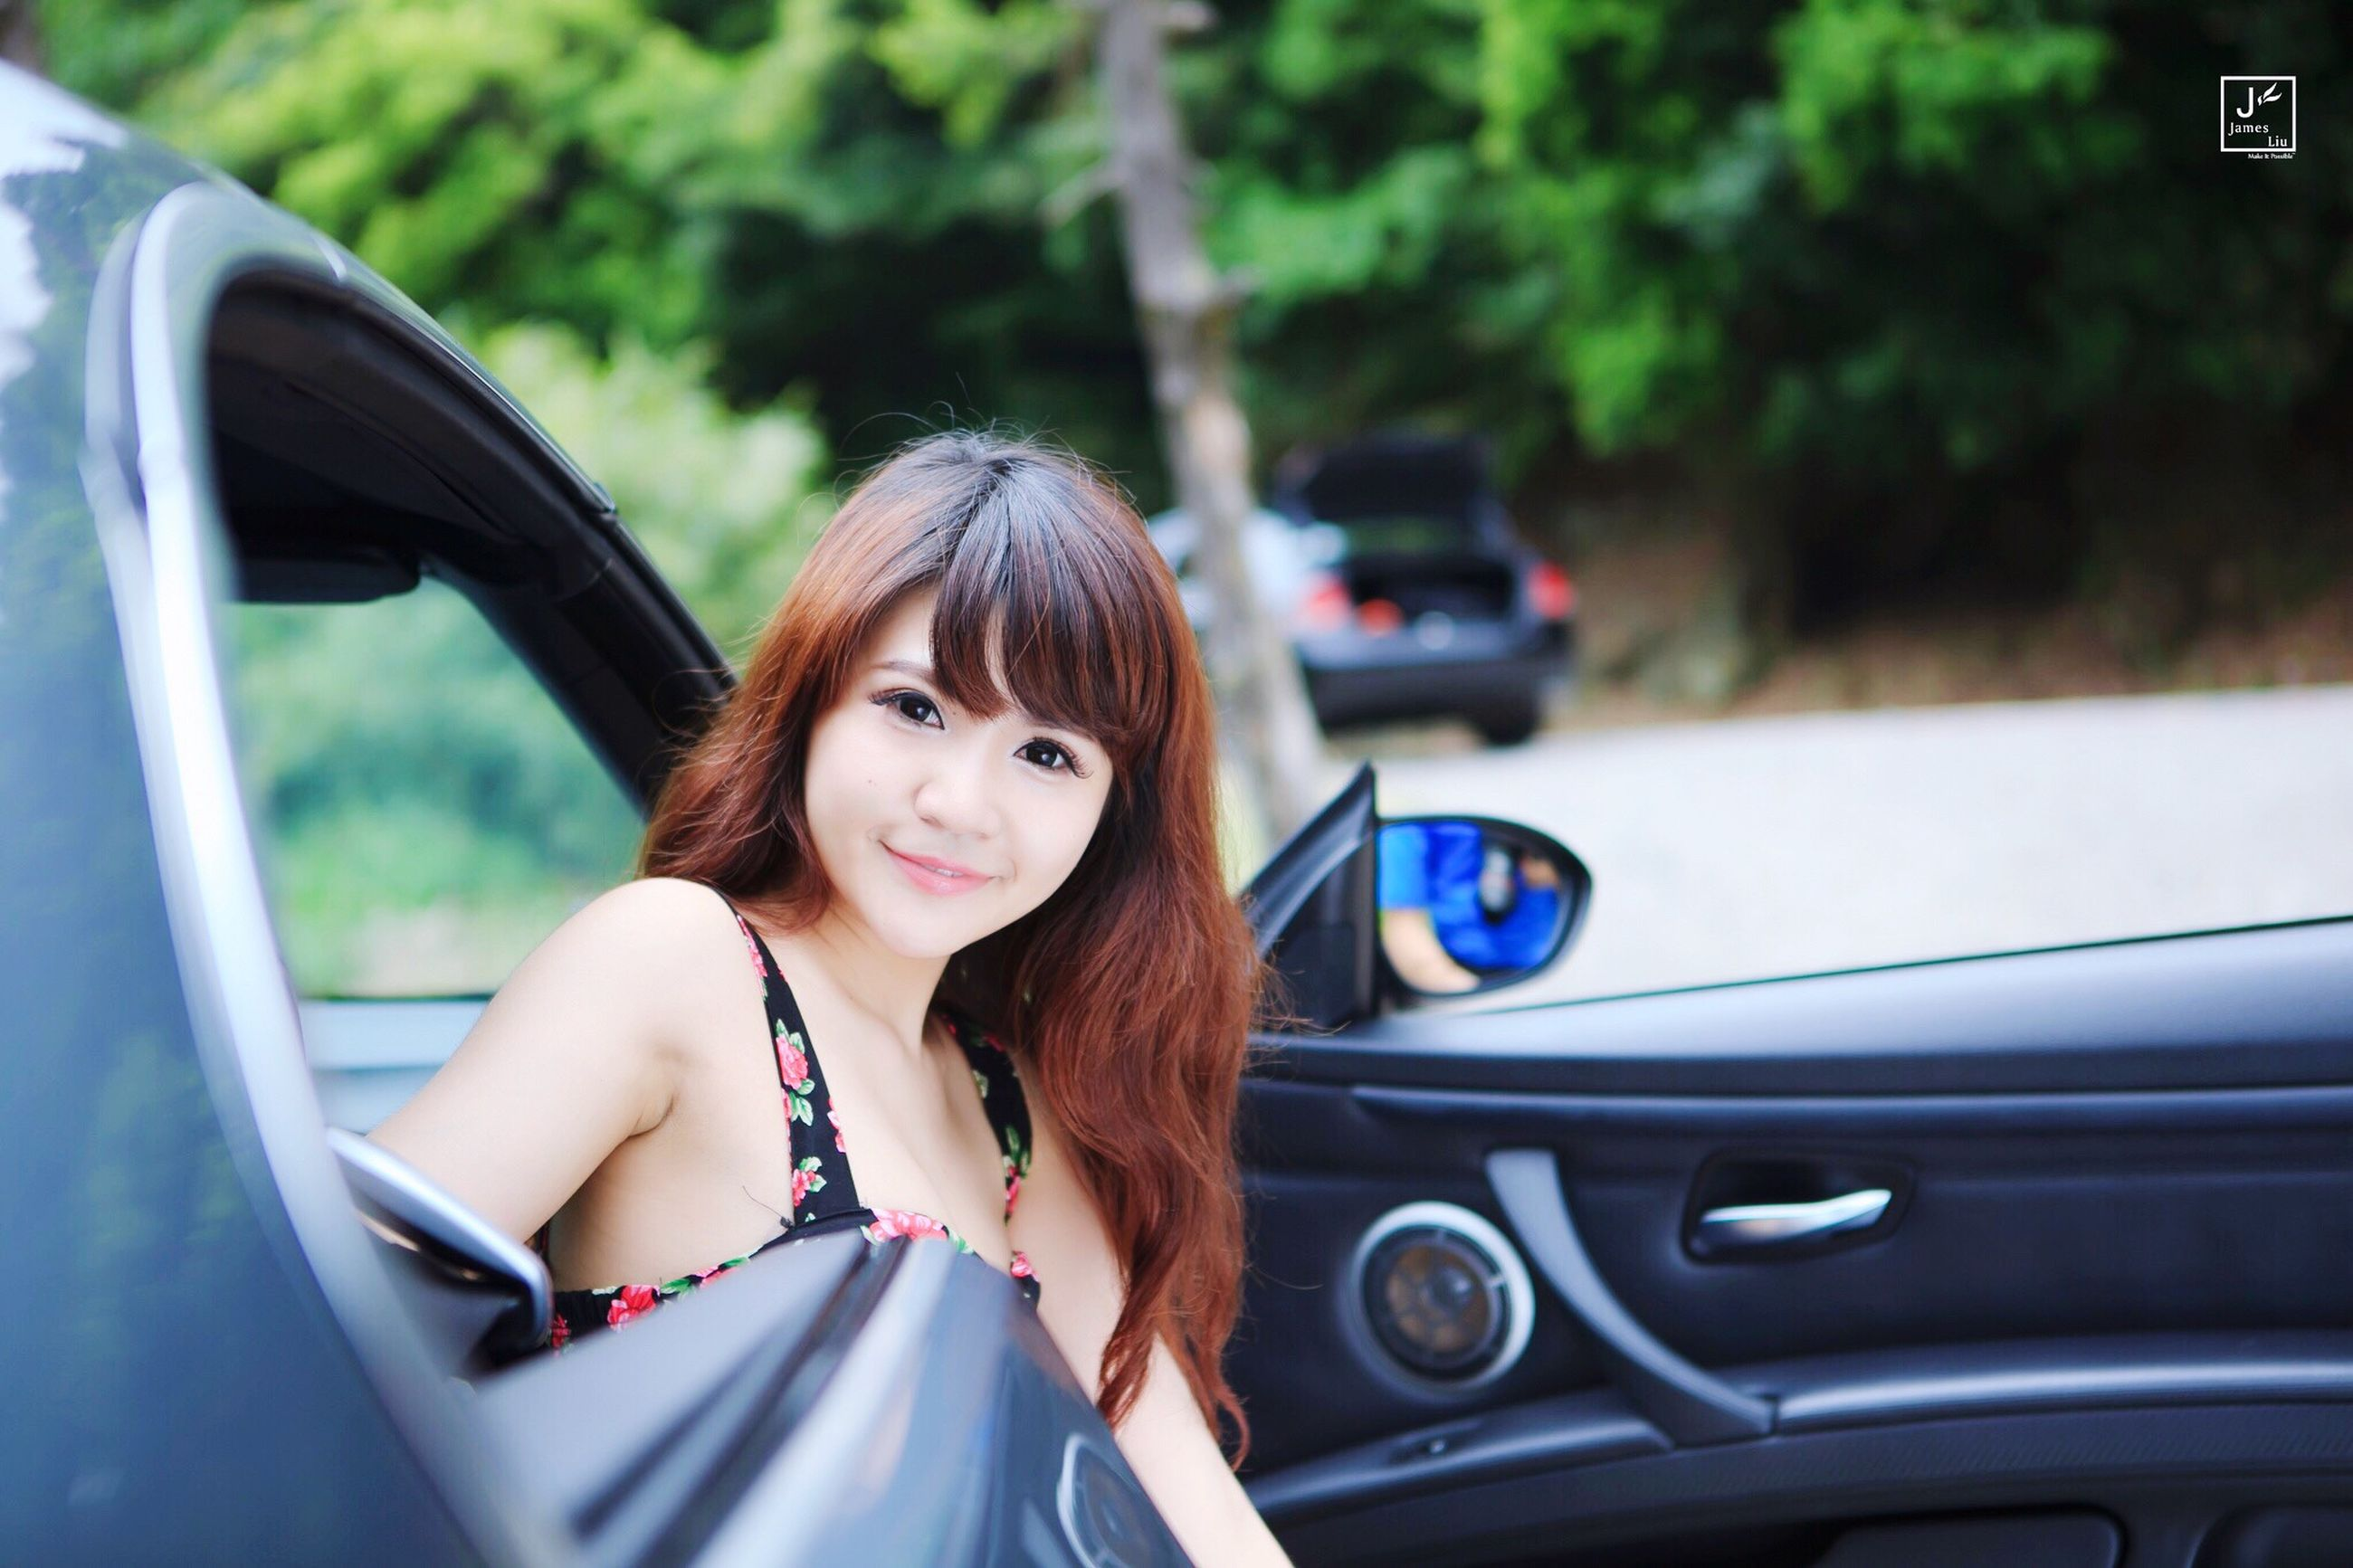 young adult, person, car, looking at camera, transportation, portrait, lifestyles, young women, leisure activity, mode of transport, smiling, land vehicle, front view, sunglasses, focus on foreground, happiness, casual clothing, headshot